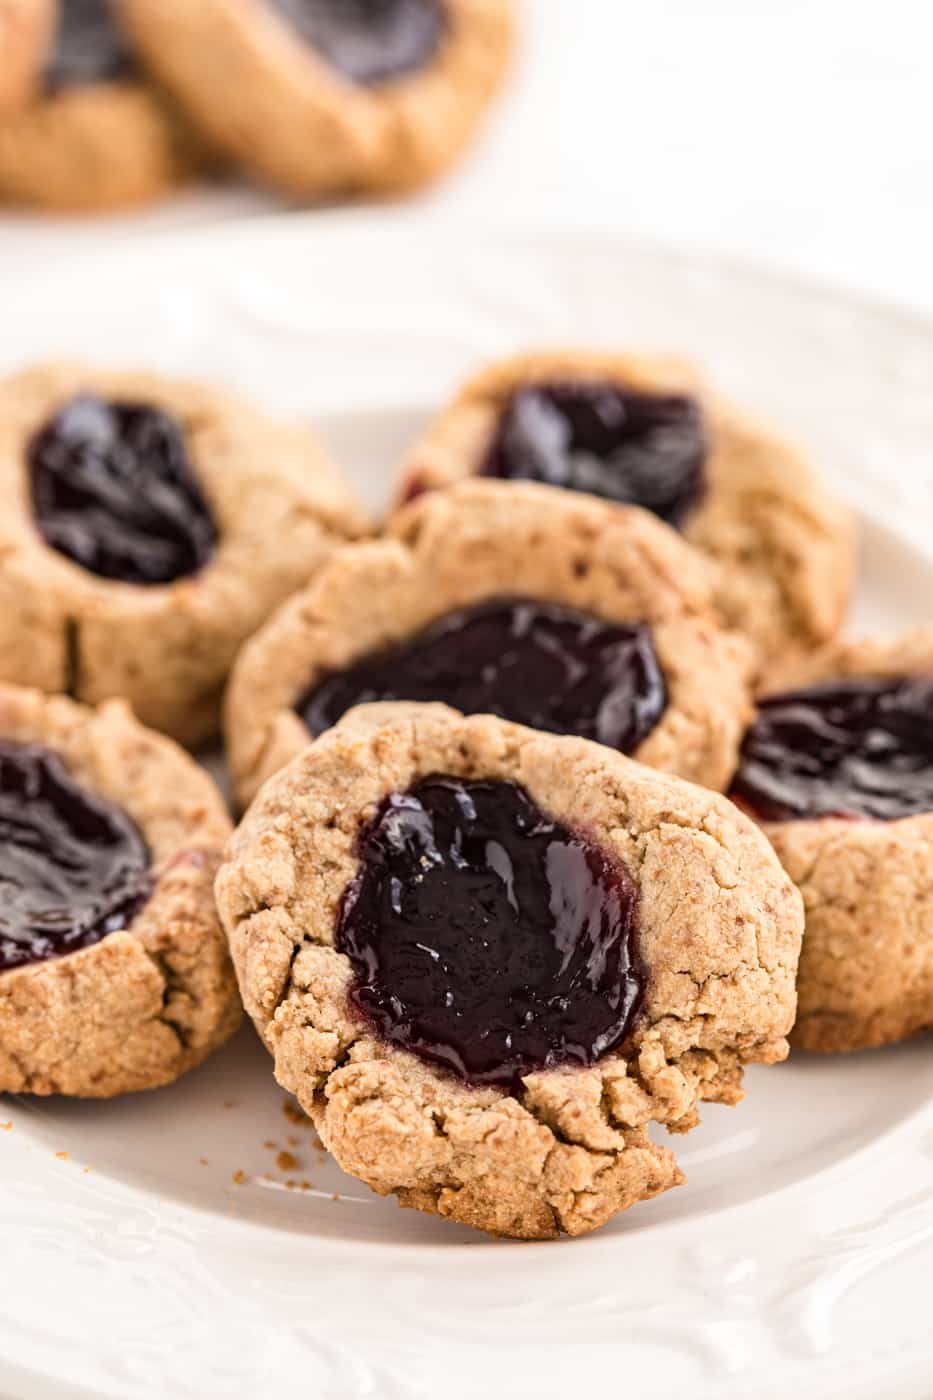 A close up photo of jam thumbprint cookies on a white plate